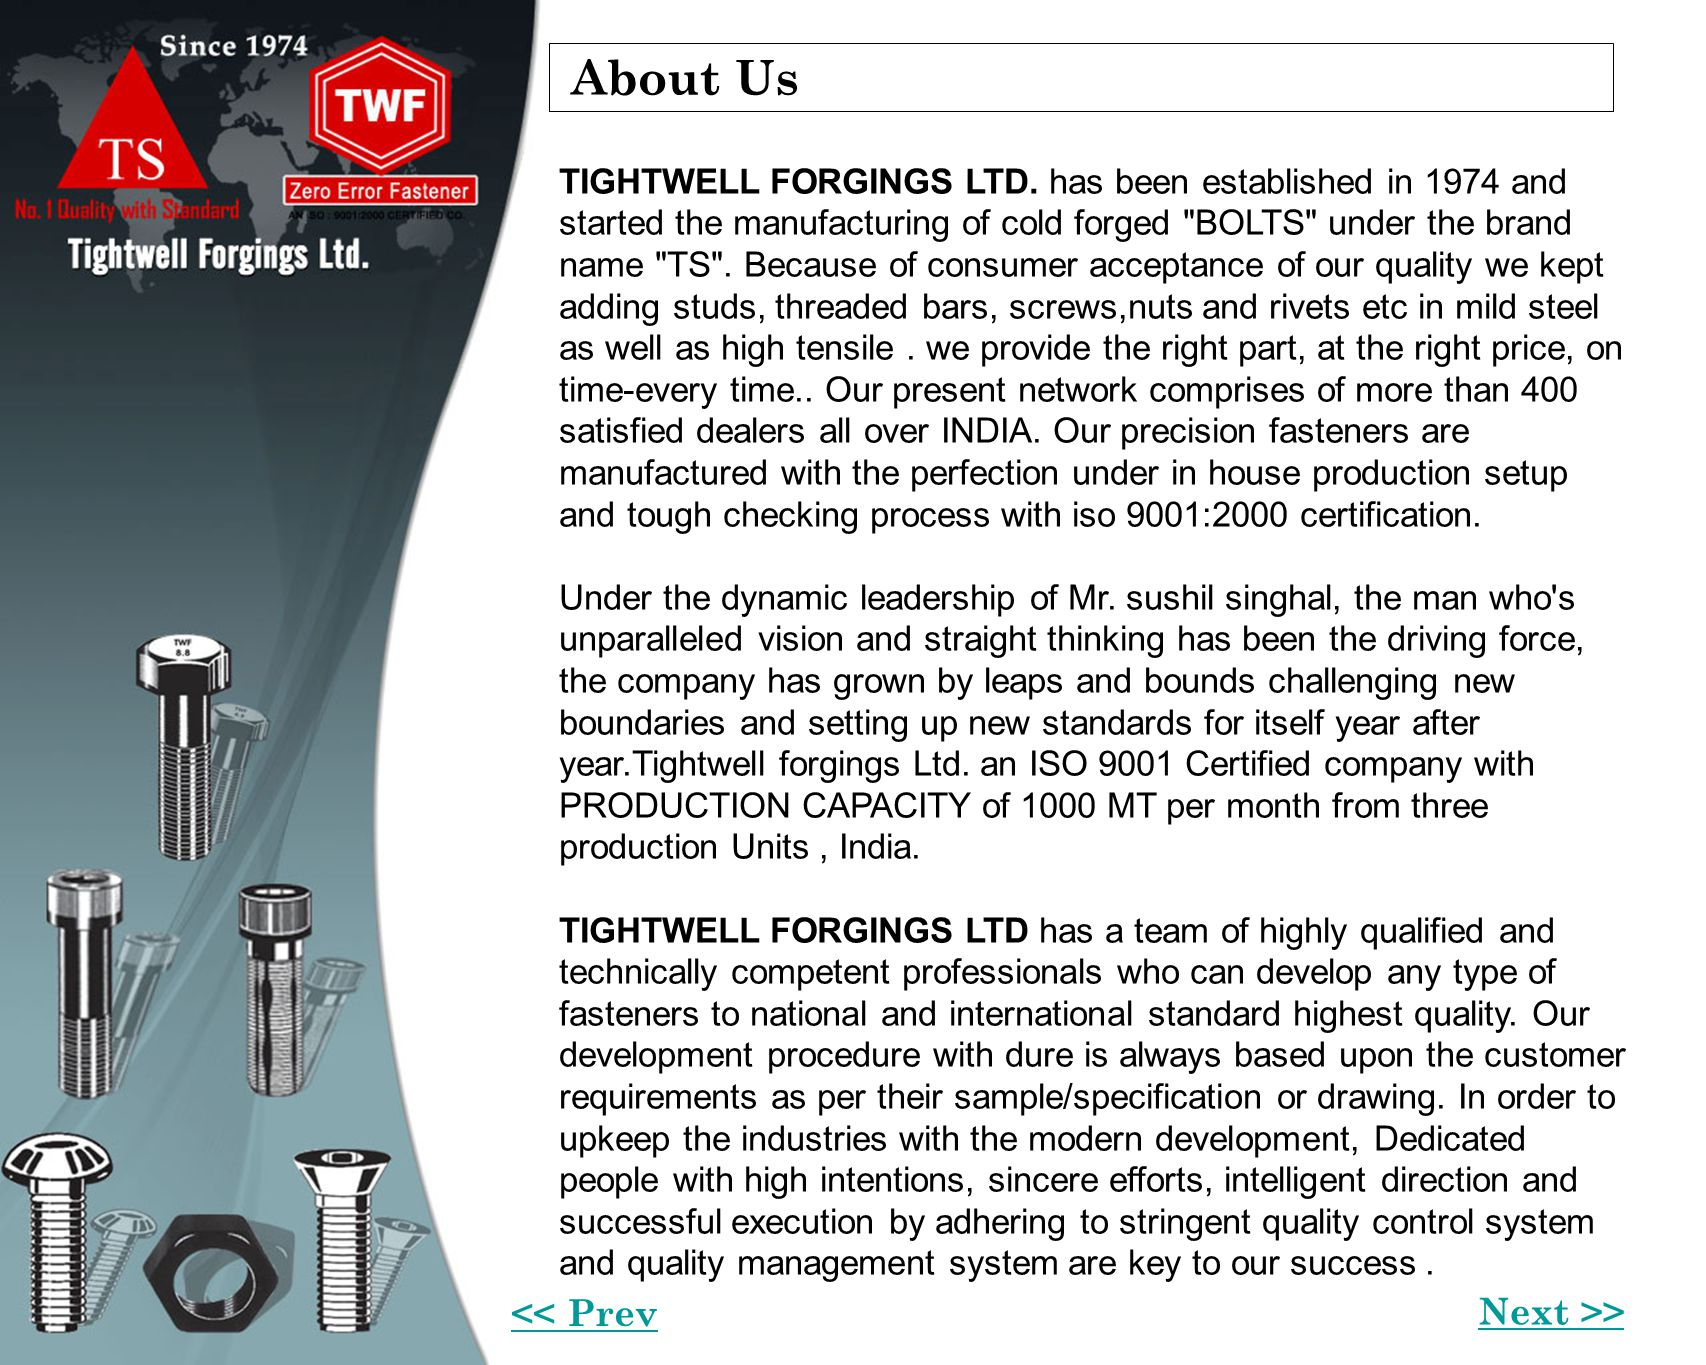 TIGHTWELL FORGINGS LTD. has been established in 1974 and started the manufacturing of cold forged